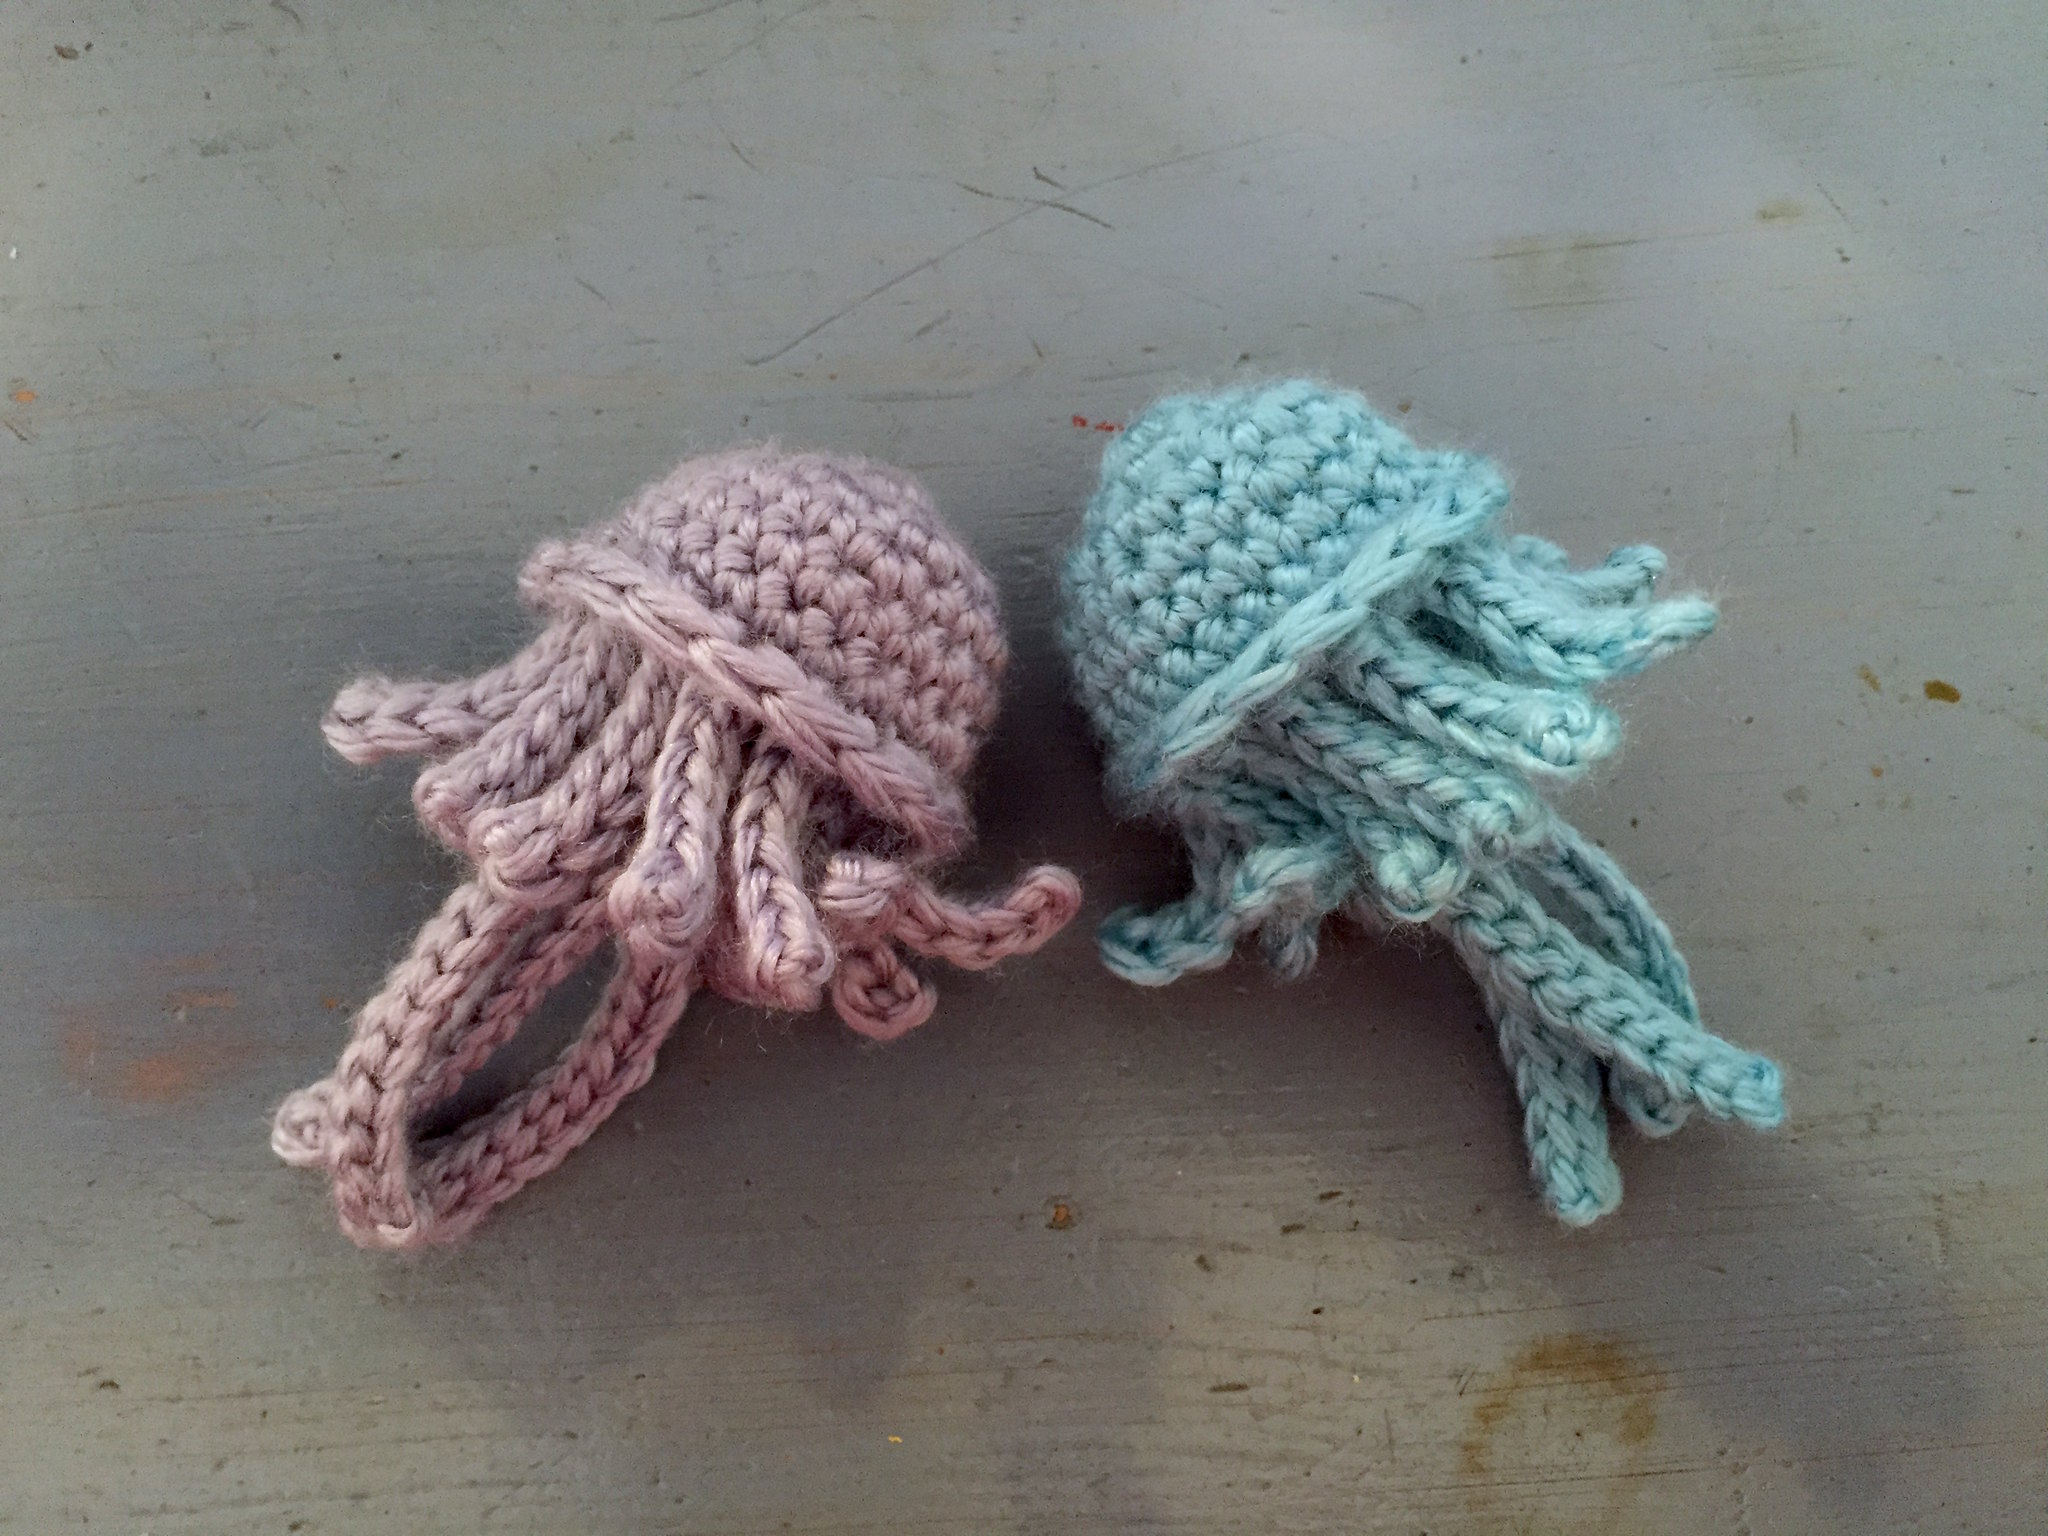 Free Crochet Patterns For Sea Animals : Suvis Crochet: Sea Life - Jellies